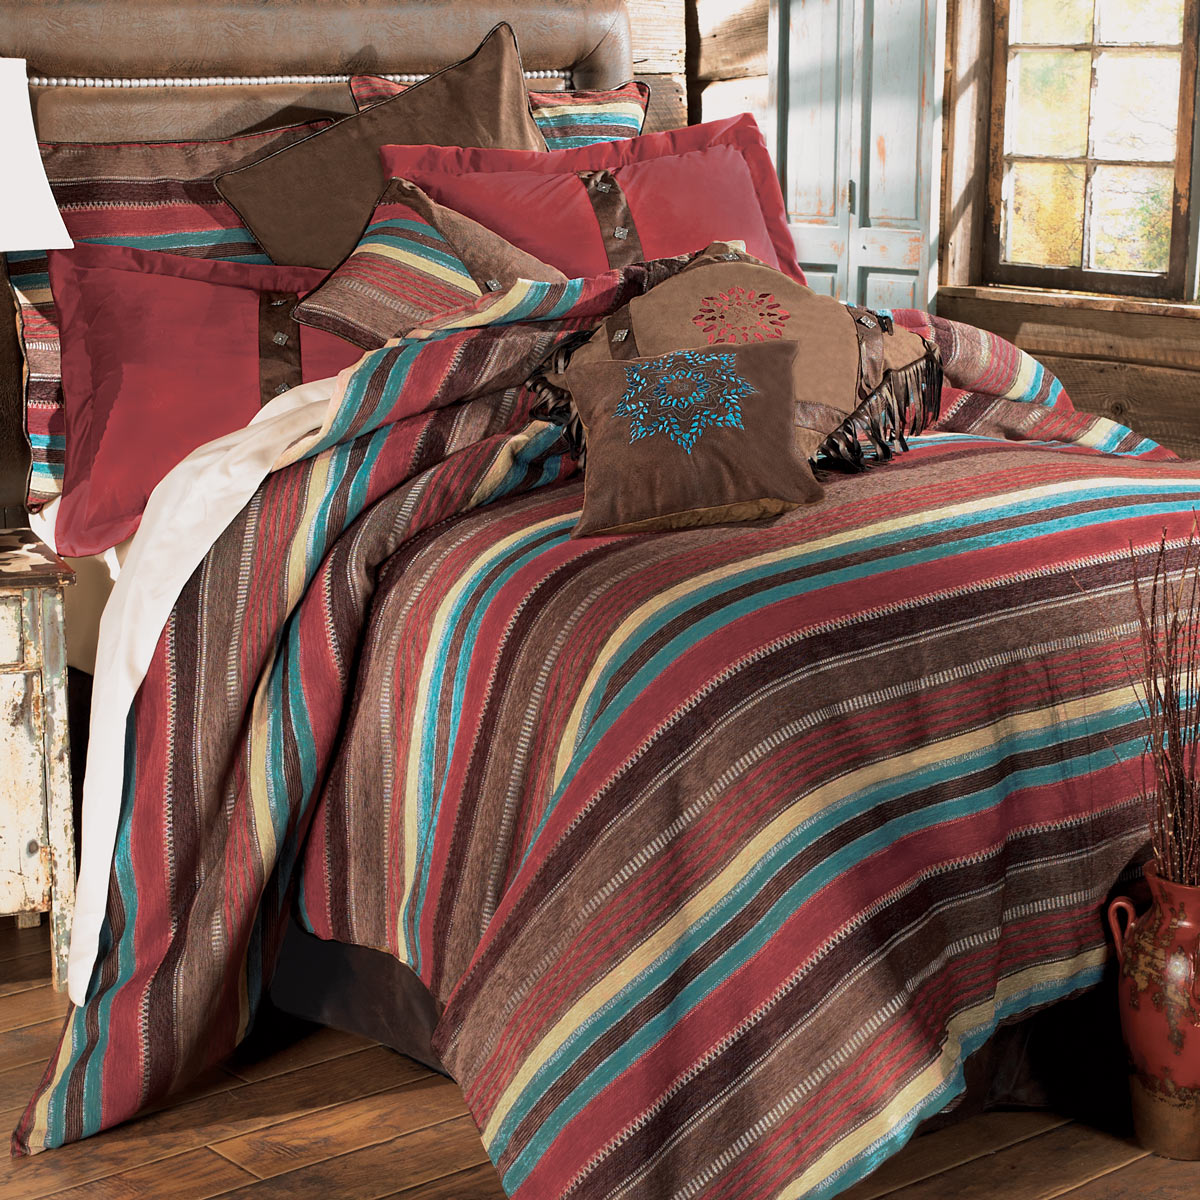 Western Espuelas Rustic Bed Set   Queen   Southwestern Bedding Decor    Walmart.com